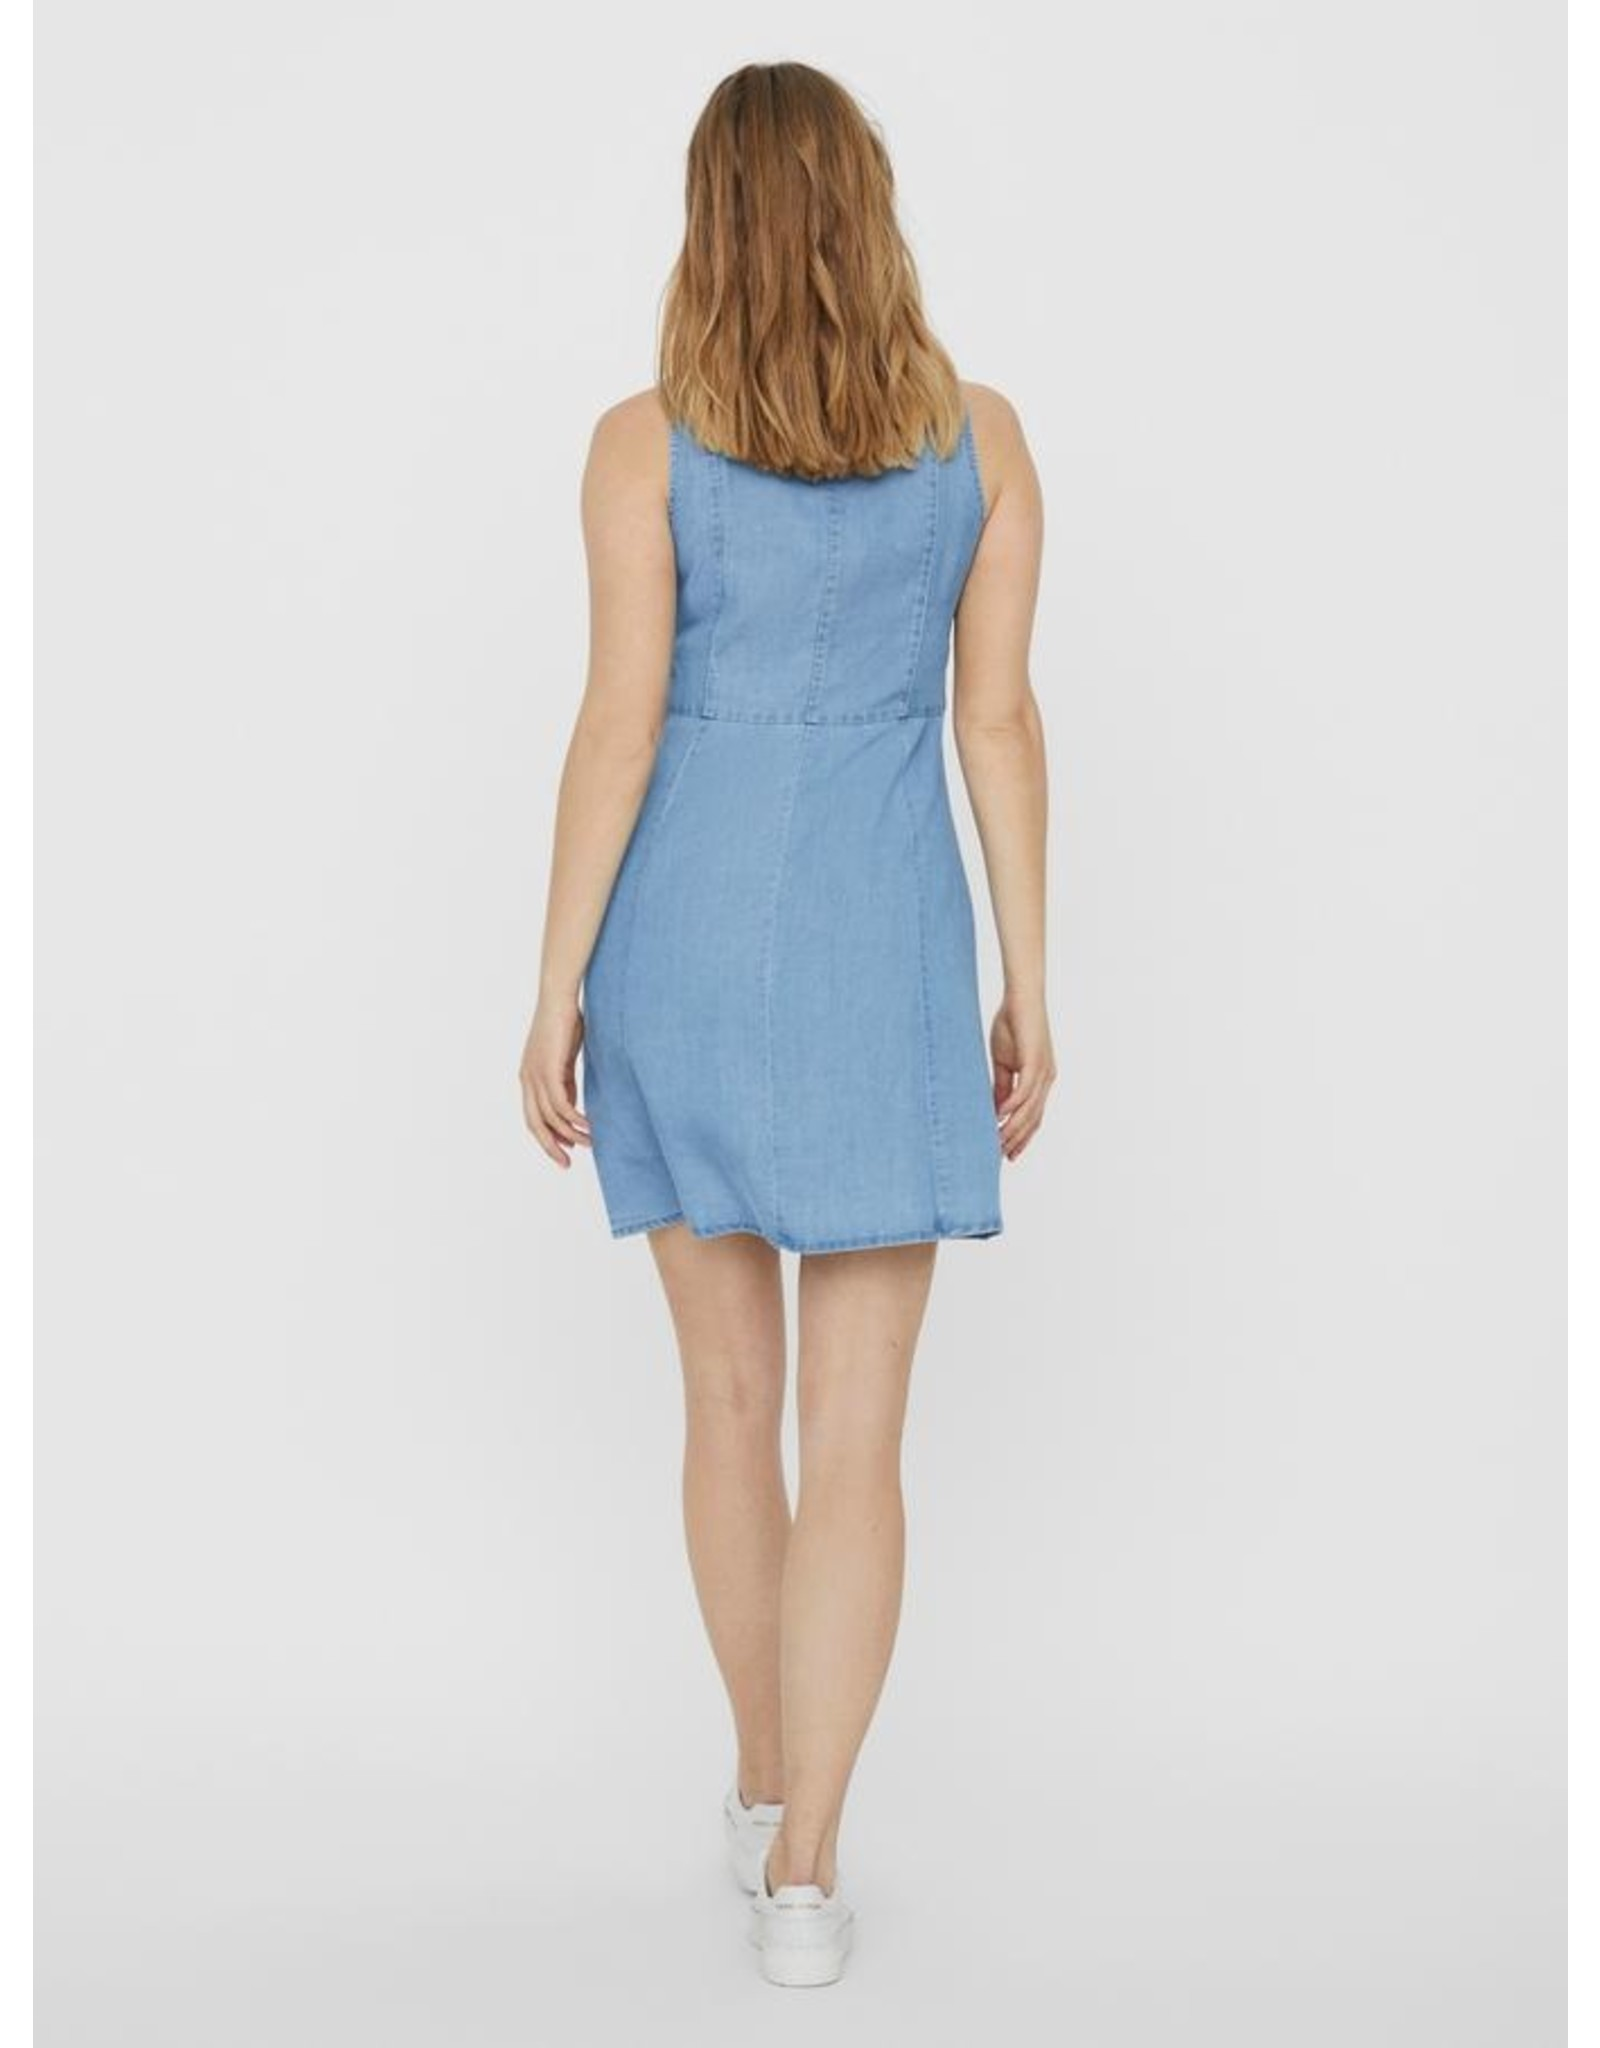 Vero Moda - Mina Dress